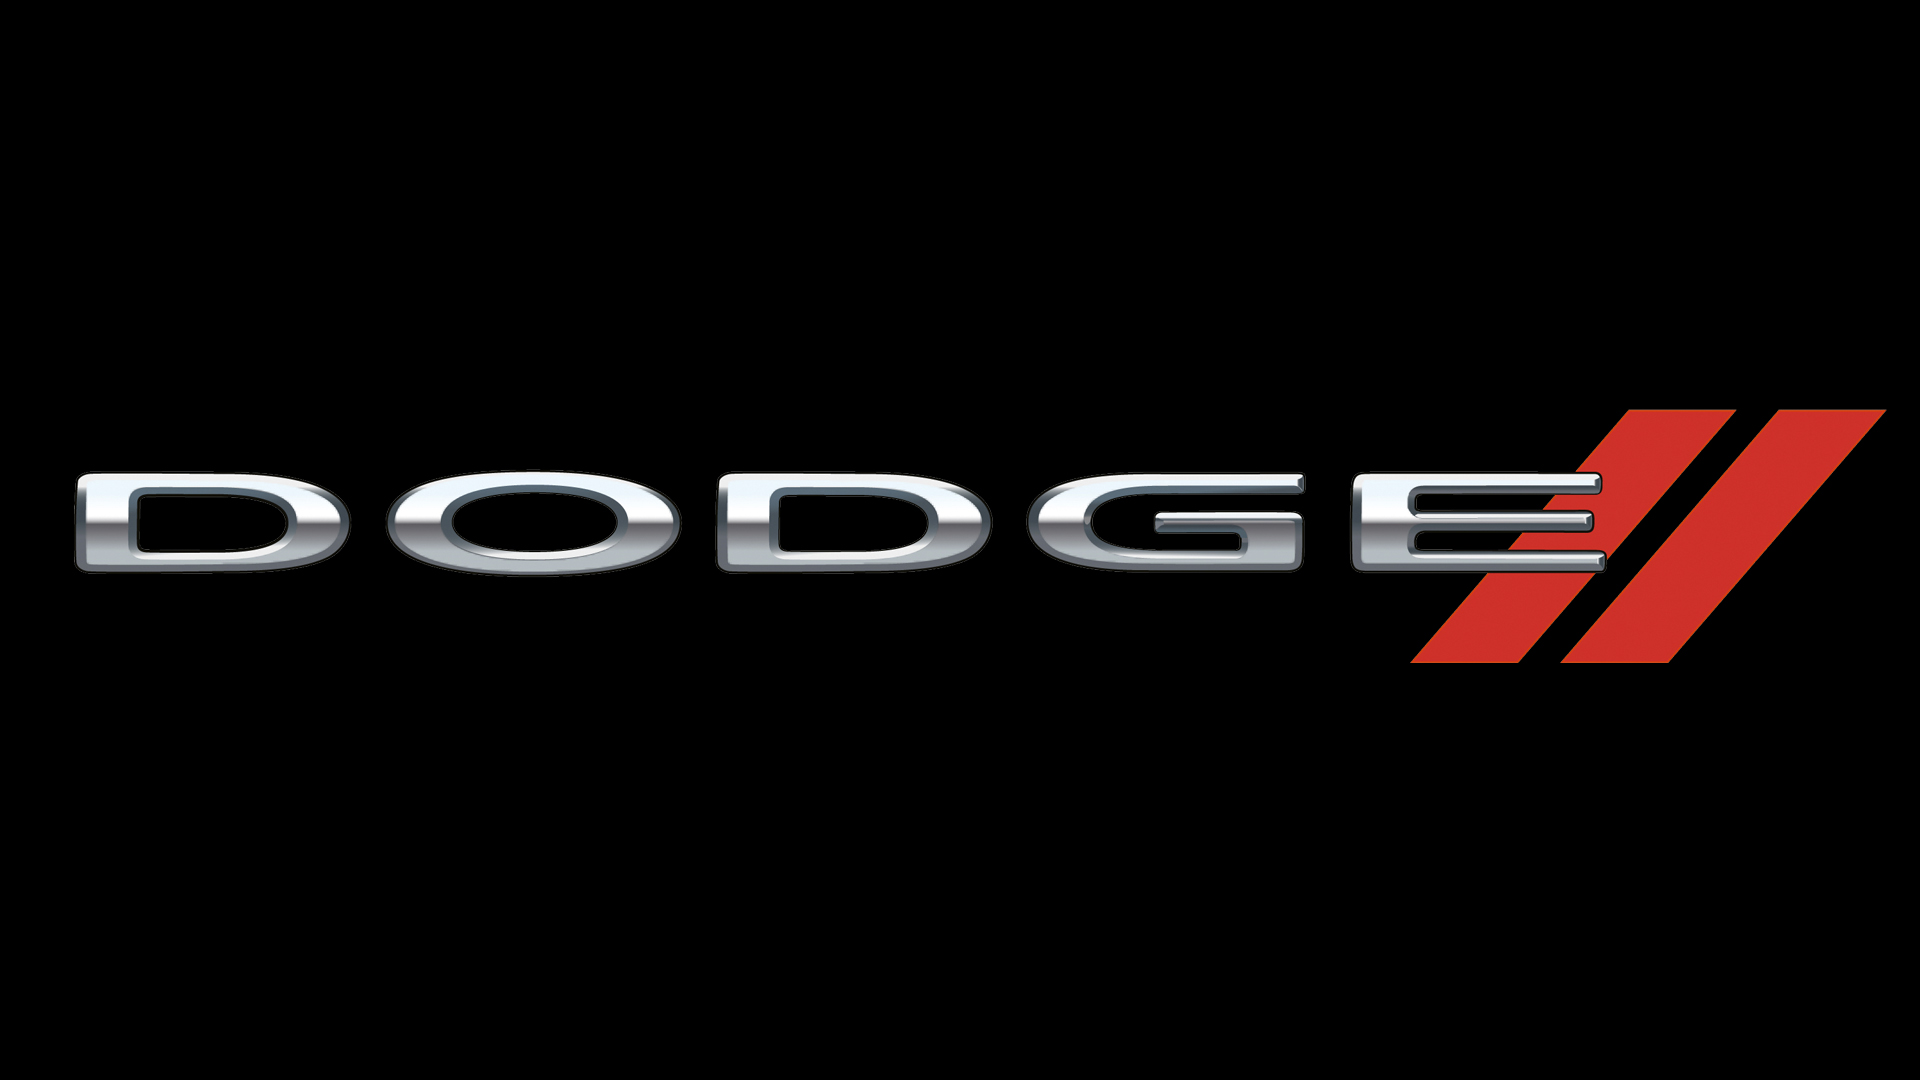 Car Companies Logos >> Dodge Logo, Dodge Symbol, Meaning, History and Evolution